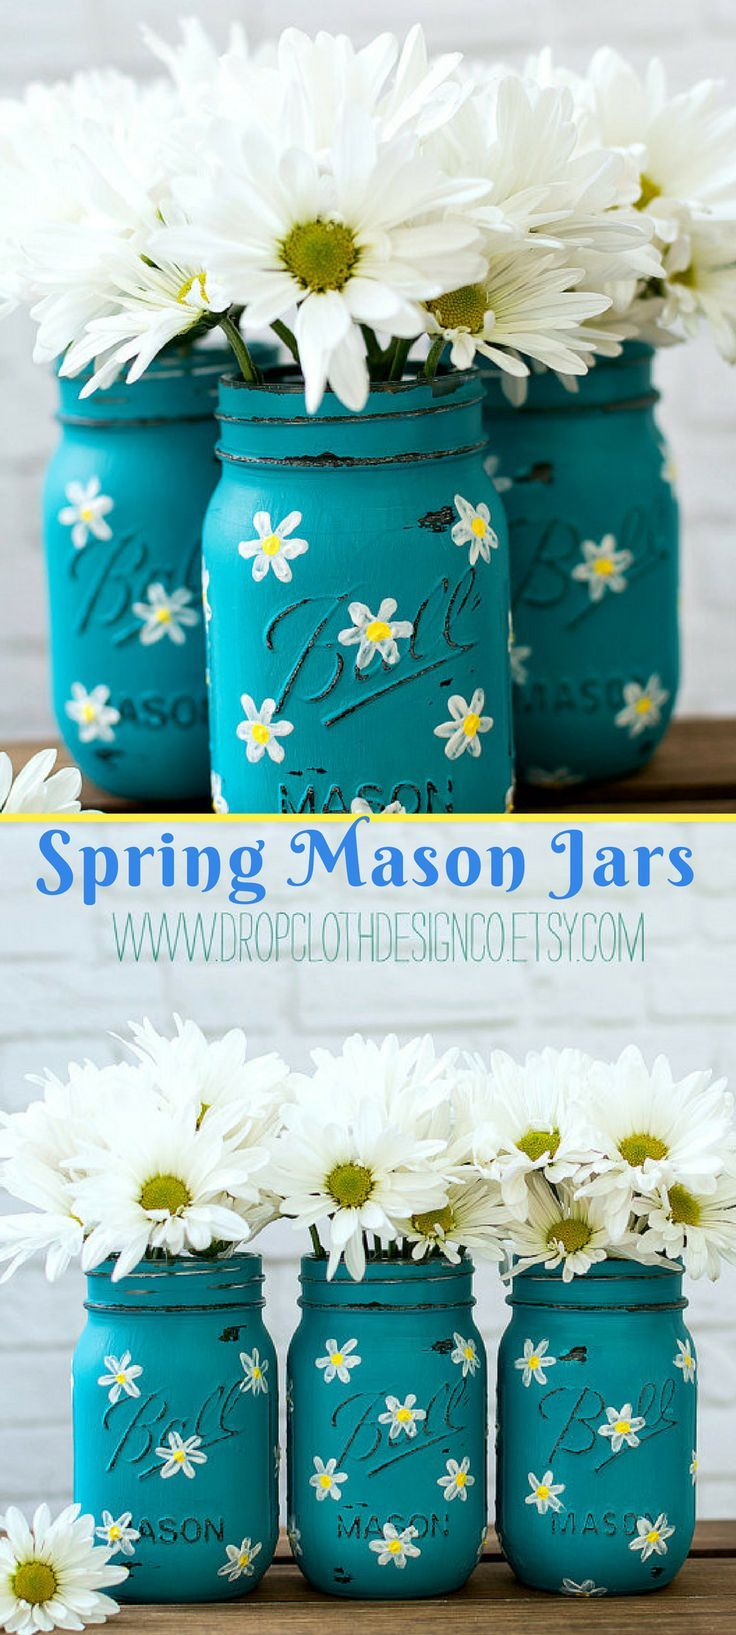 These daisy inspired painted mason jars just ooze with spring! I would love these for my front porch. Daisy Mason Jar Set - Teal Mason Jars Painted and Distressed with Daisies. #Ad #masonjar #masonjarcrafts  #spring #daisy #etsy